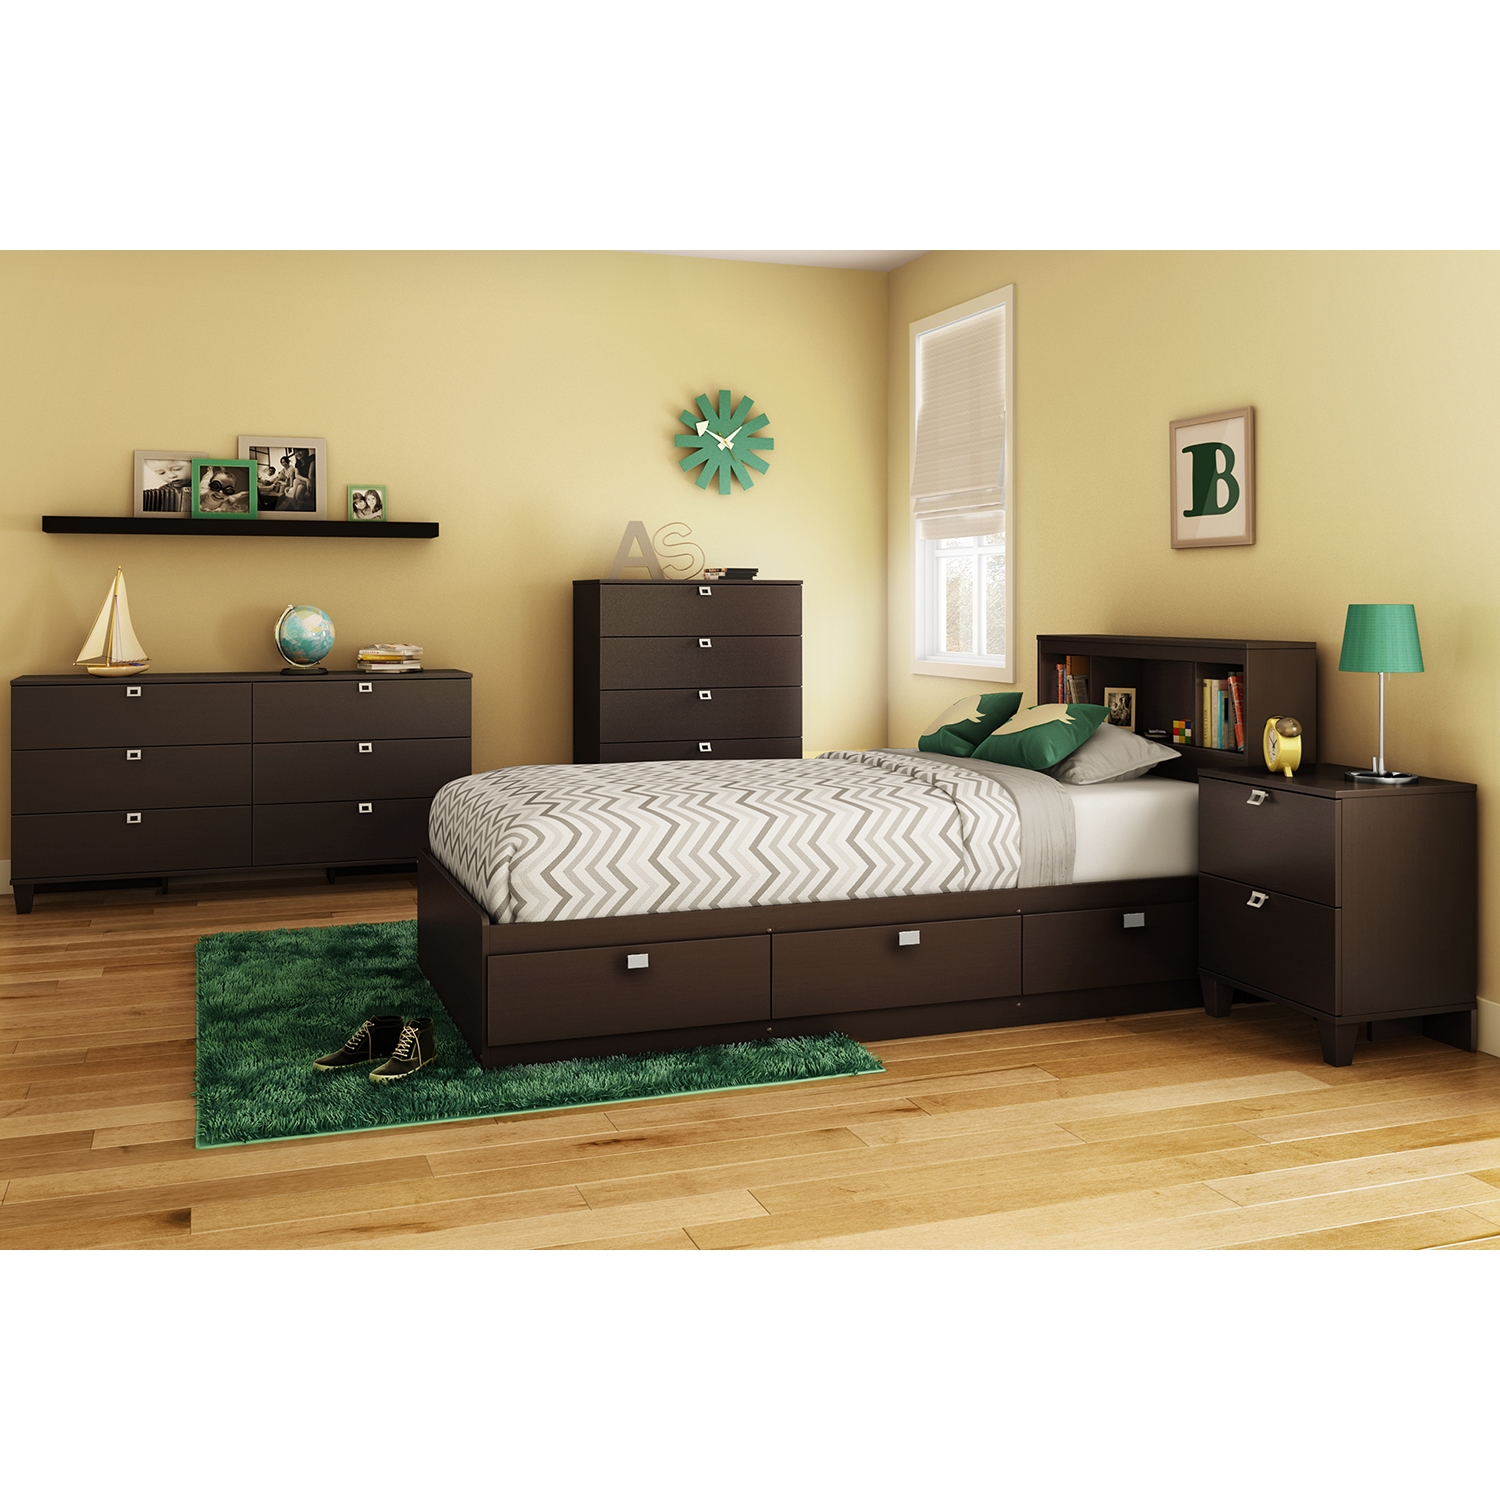 Karma Twin Mates Bed - 3 Drawers, Chocolate - SS-9000C1